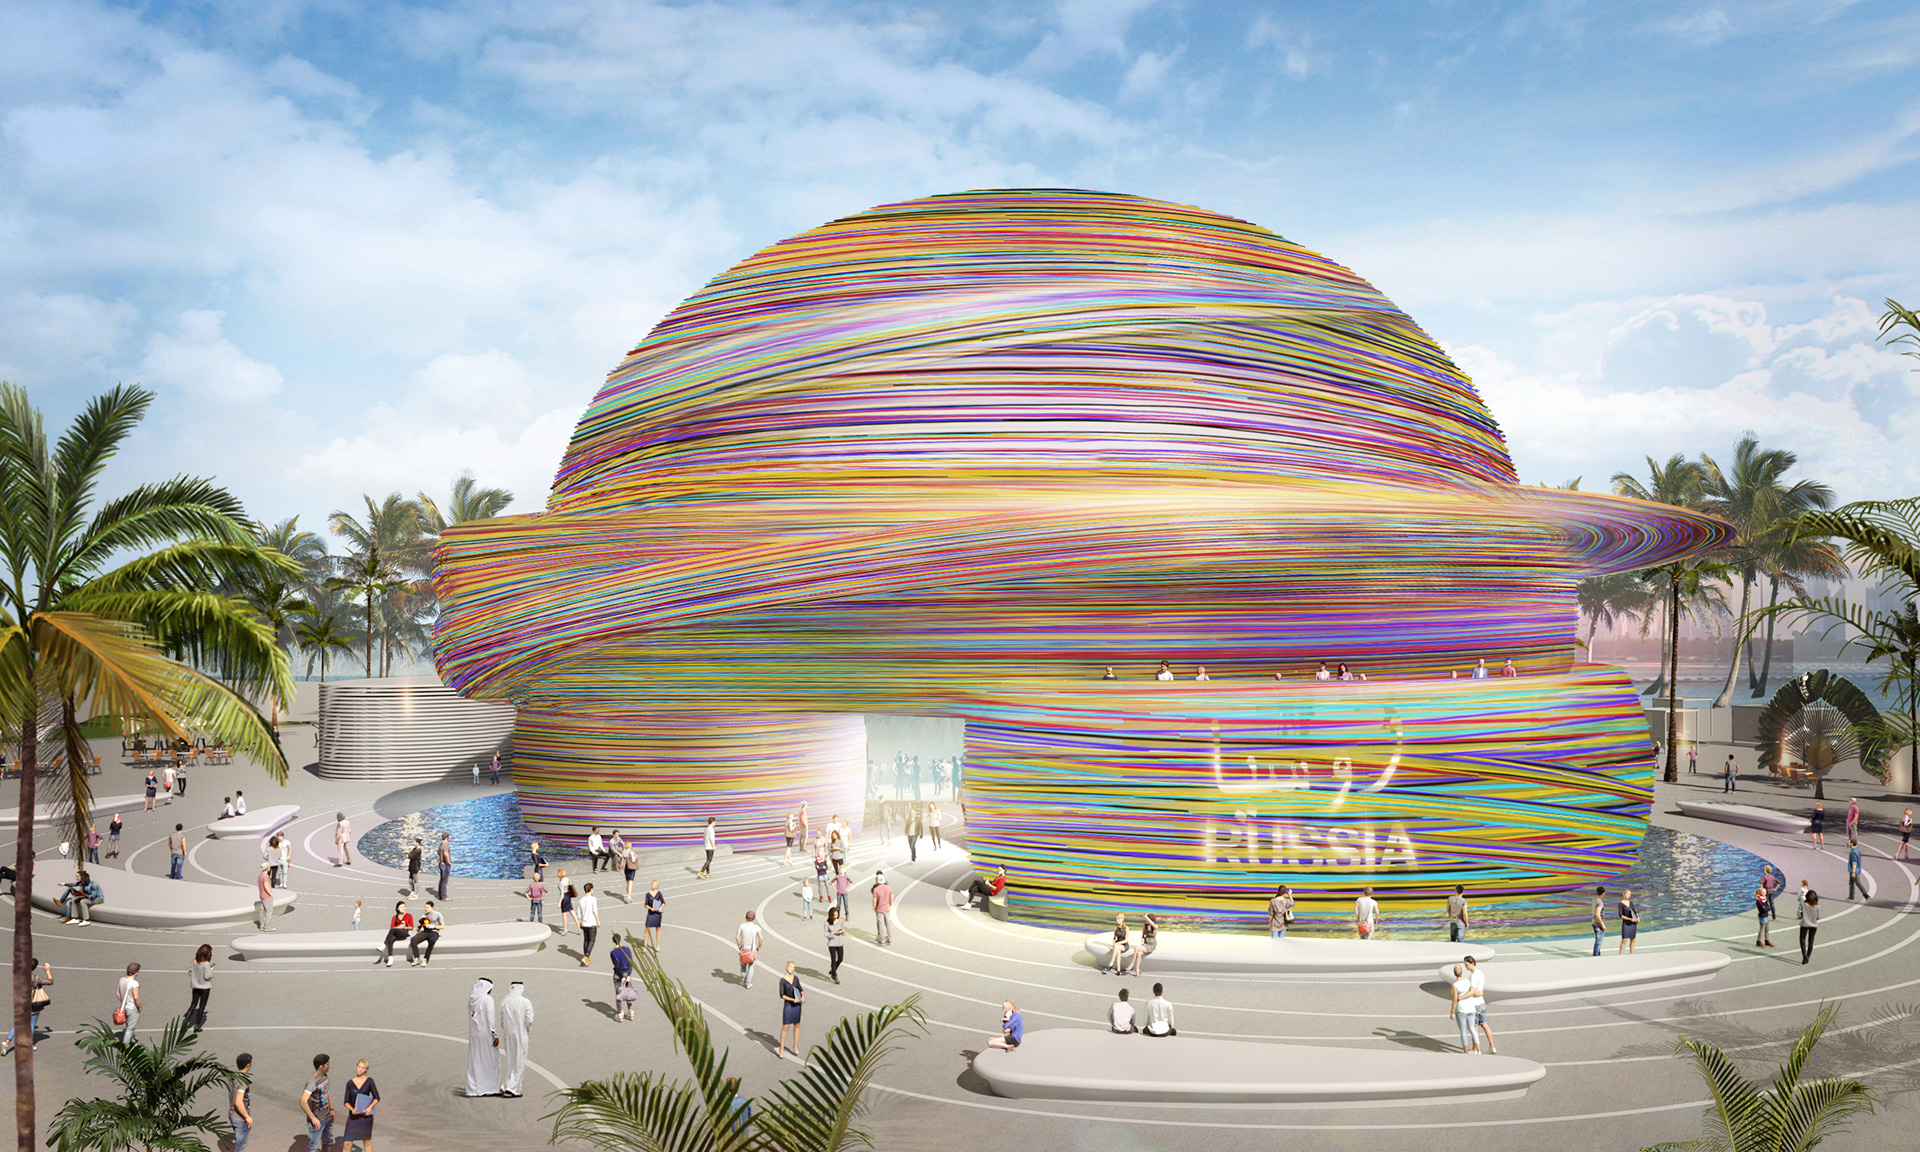 The Russia Pavilion by architecture firm Tchoban SPEECH and Simpateka Entertainment Group at the Expo 2020 Dubai | Mobility | Pavilion | Expo 2020| Dubai| STIRworld